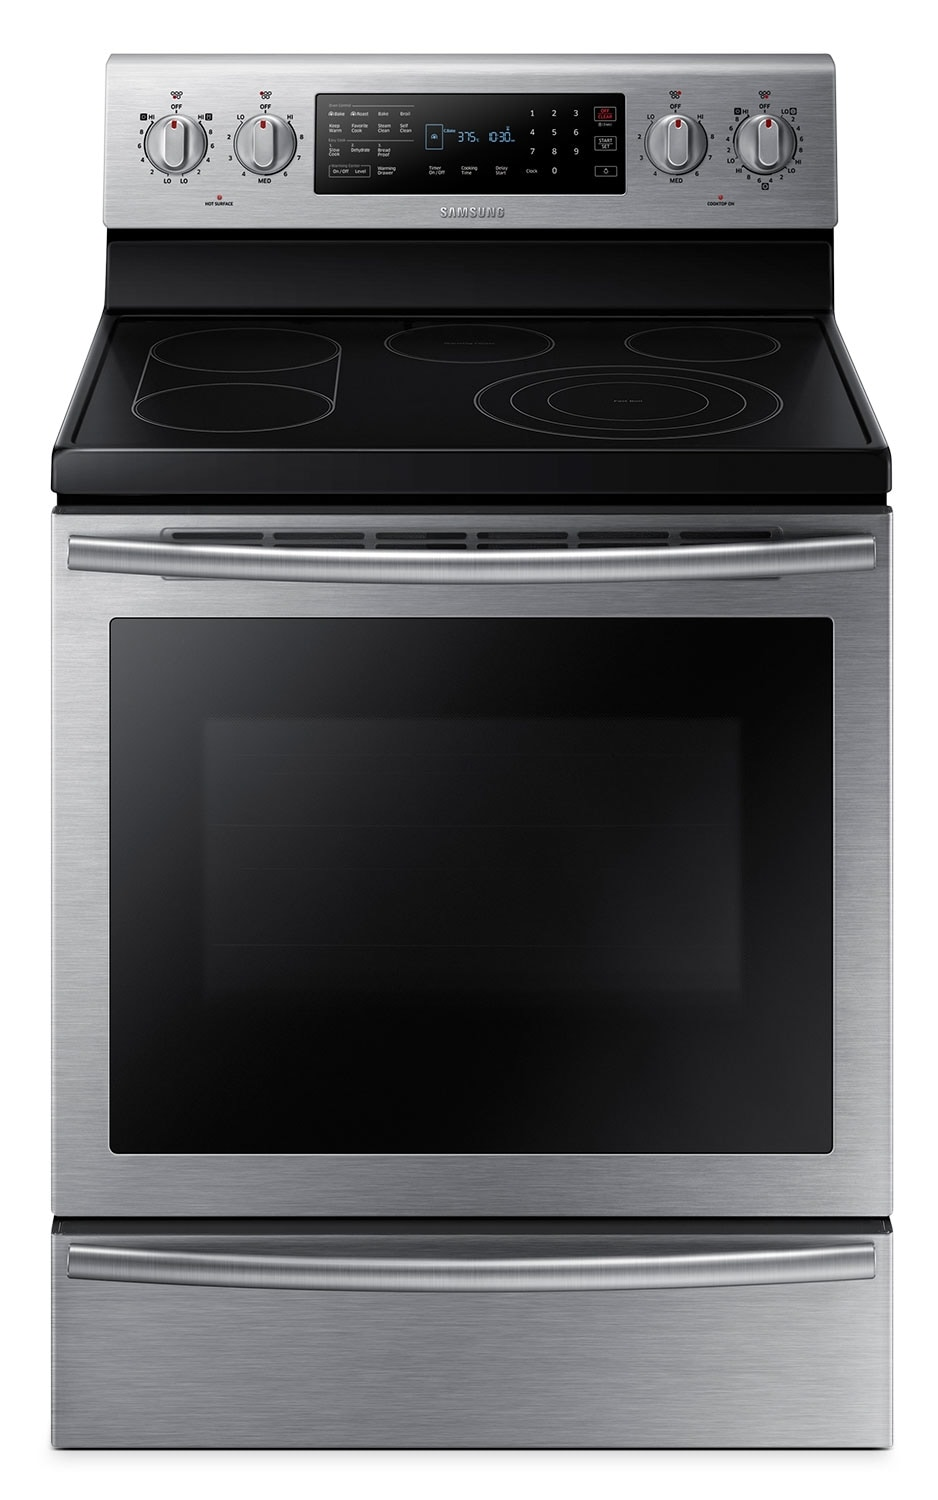 Samsung 5.9 Cu. Ft. Electric Convection Range with Warming Drawer – Stainless Steel